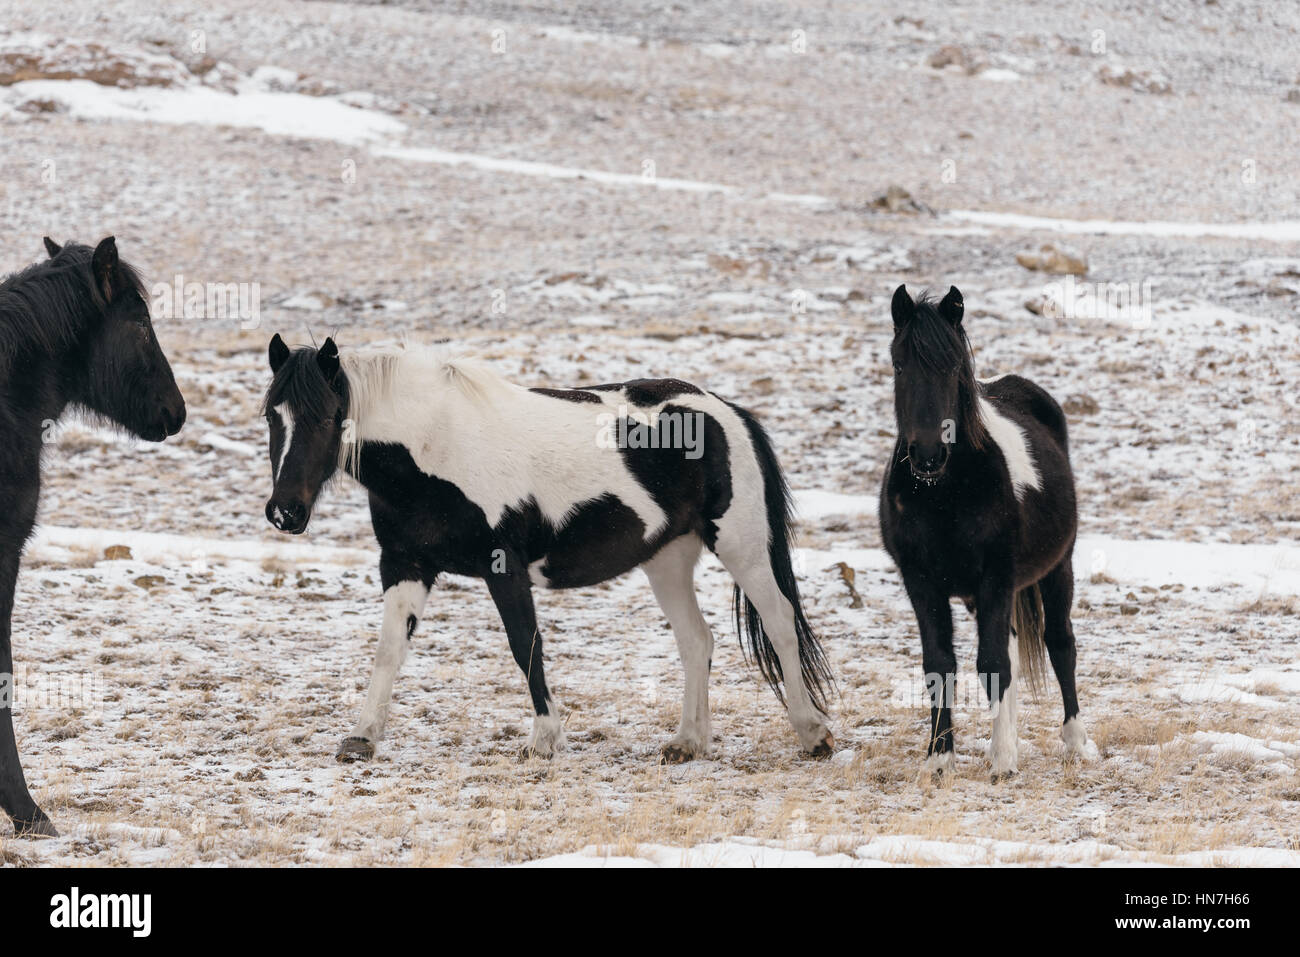 Horses in the snow-covered steppe. - Stock Image